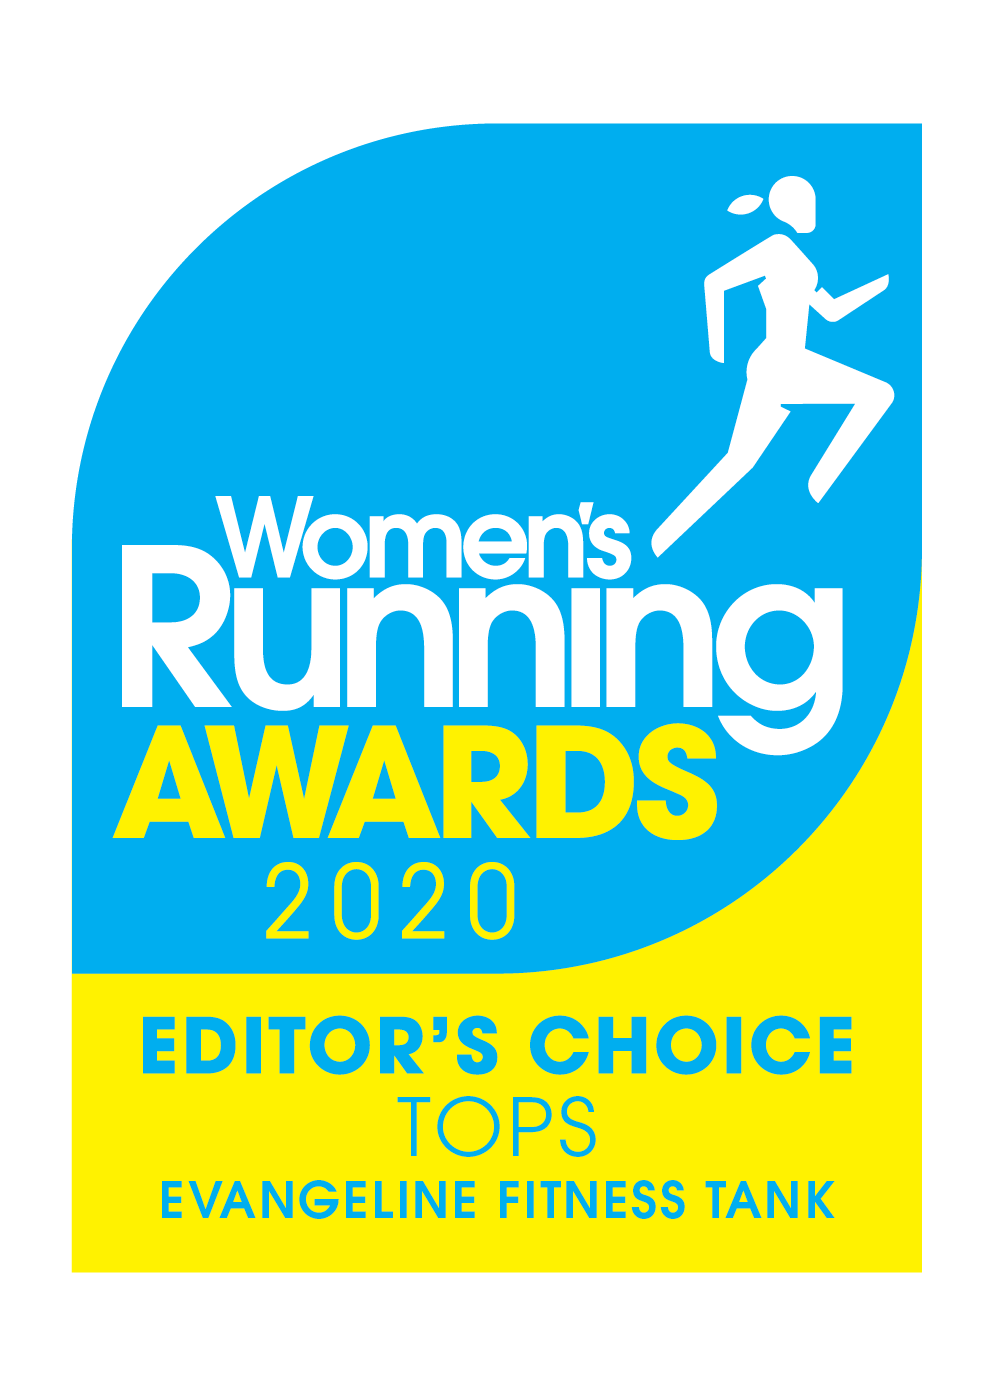 Women's Running Awards 2020 - Editor's Choice Tops - Evangeline Fitness Tank